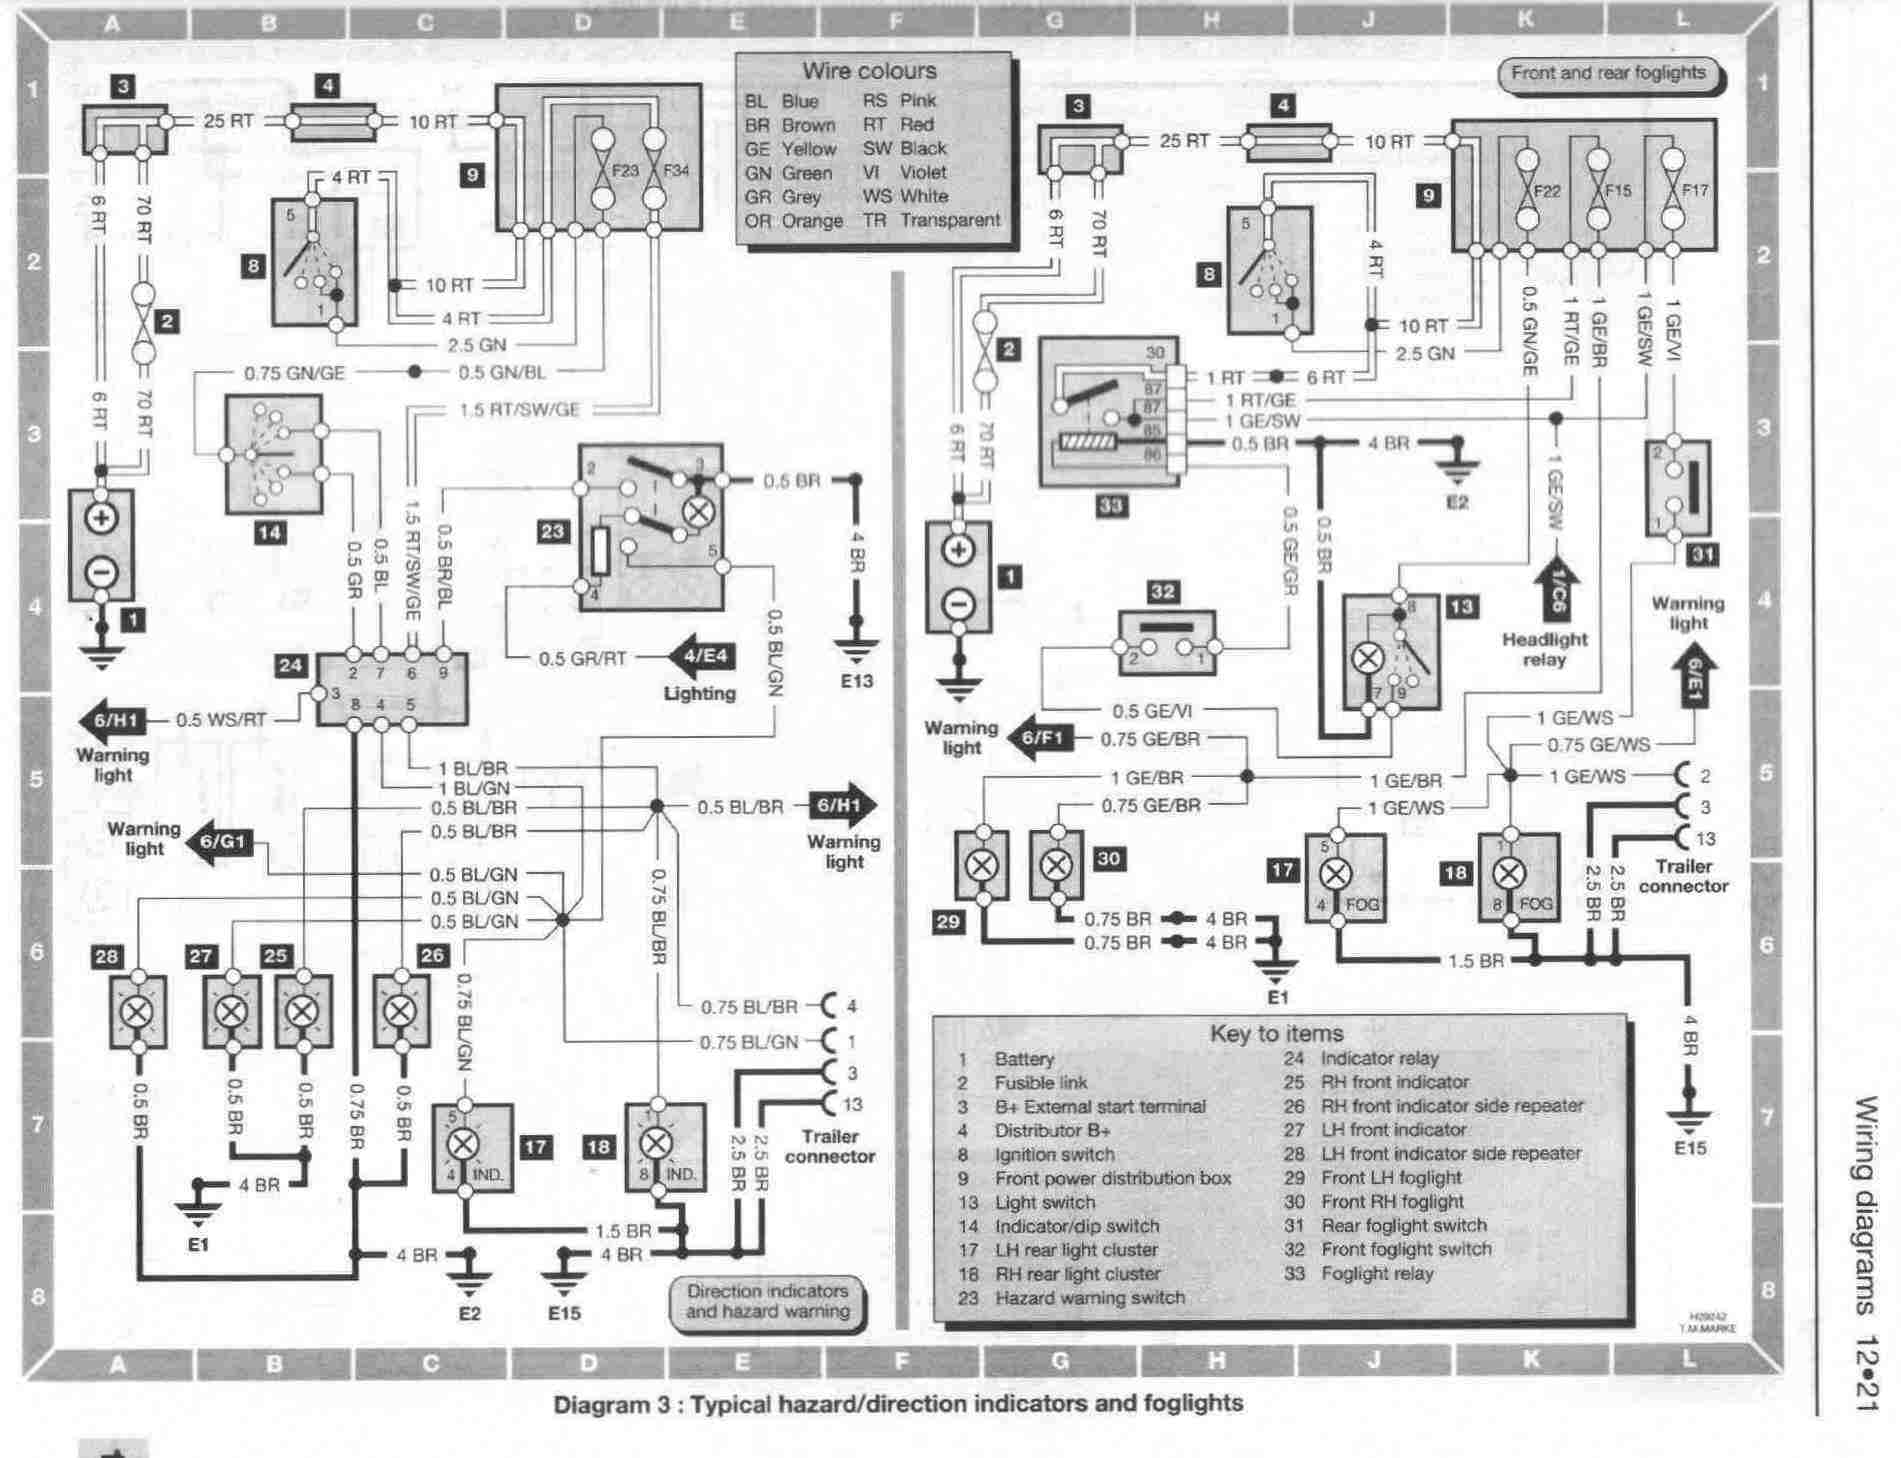 wiring diagram bmw x5 with Wiring Diagram Also Bmw E46 Fuse Box Location In on Wiring Diagram 1996 Bmw 328i Belt further 91 Bmw 325i Fuse Box Diagram together with Fuel Pressure Regulator Clutch Cable Roller Bearing also Sign Language I Love You Clip Art furthermore 2004 Ski Doo Wiring Diagram Schematic.